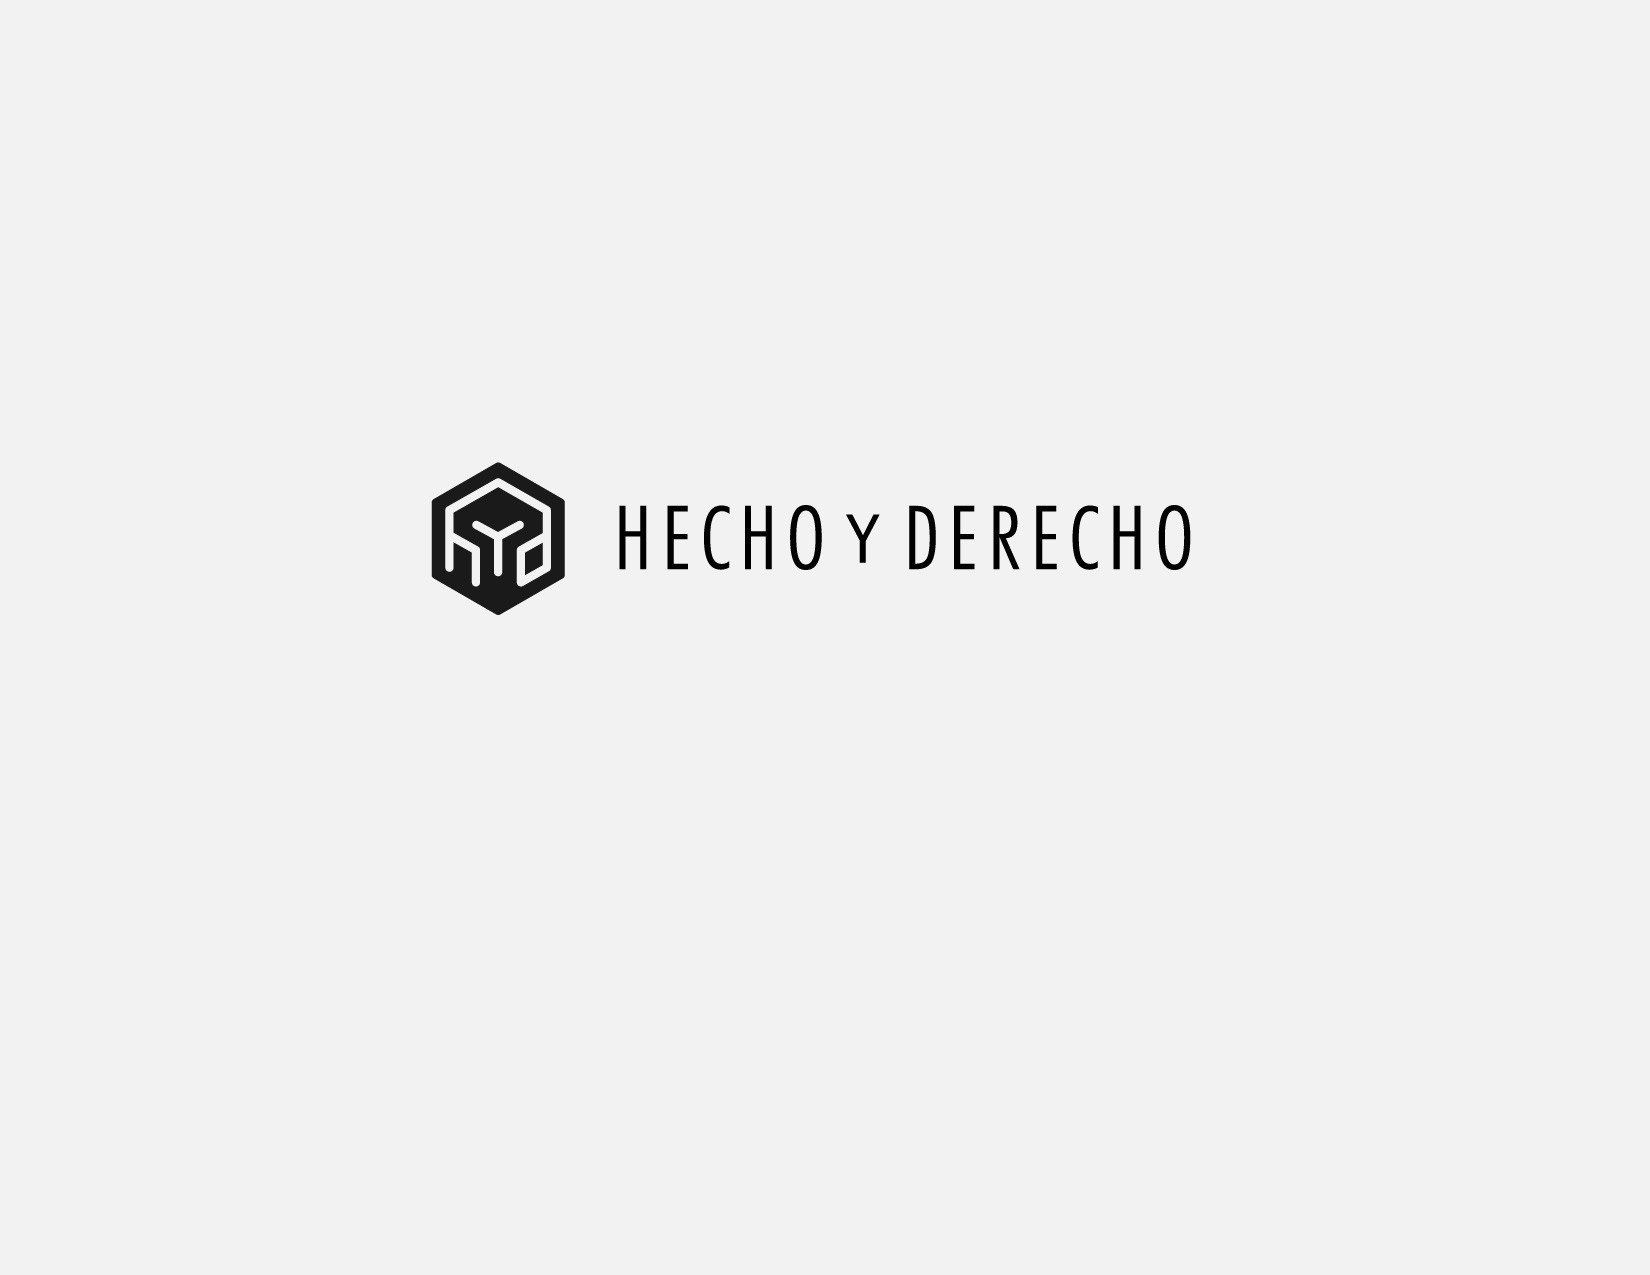 New logo wanted for hecho y derecho